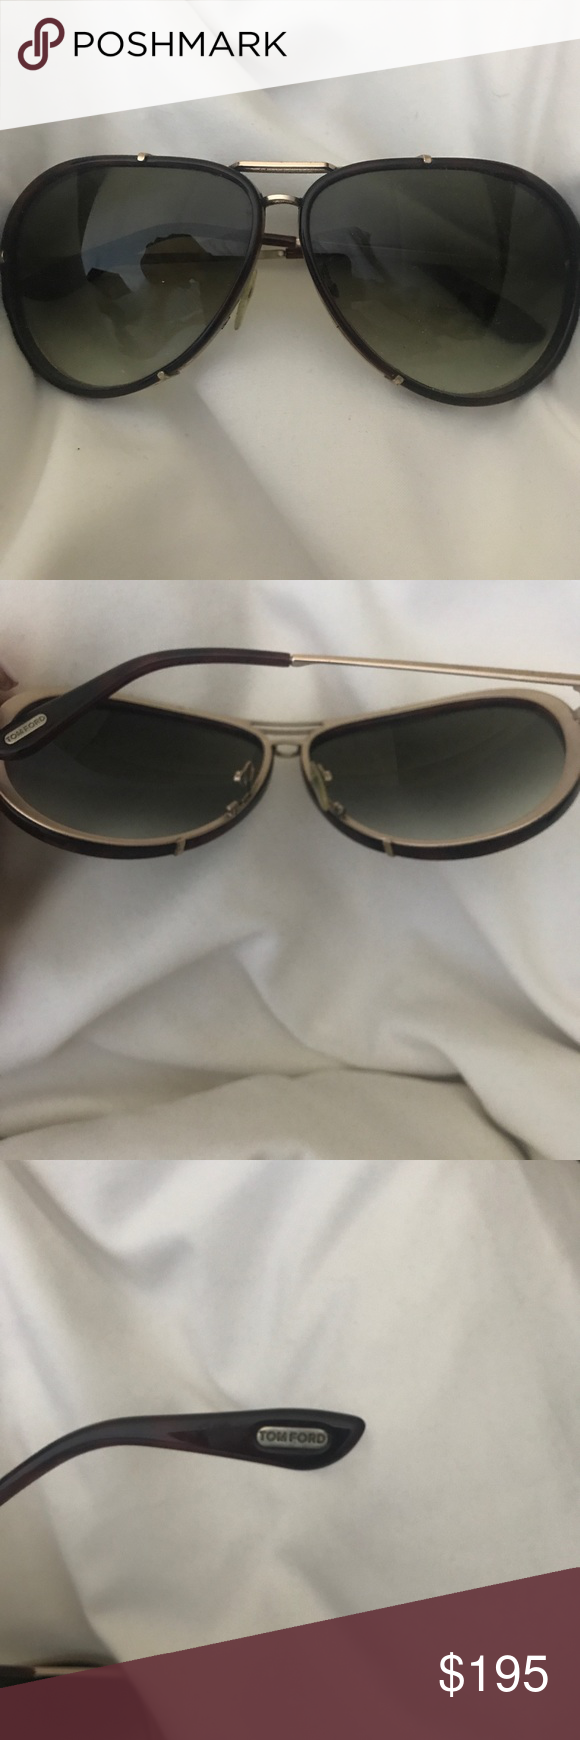 019bb5815161a Tom Ford Mens glasses- Aviators Tom Ford mens glasses- Aviators- Authentic  model   TF 109 28k 63 10. Used Tom Ford Accessories Belts